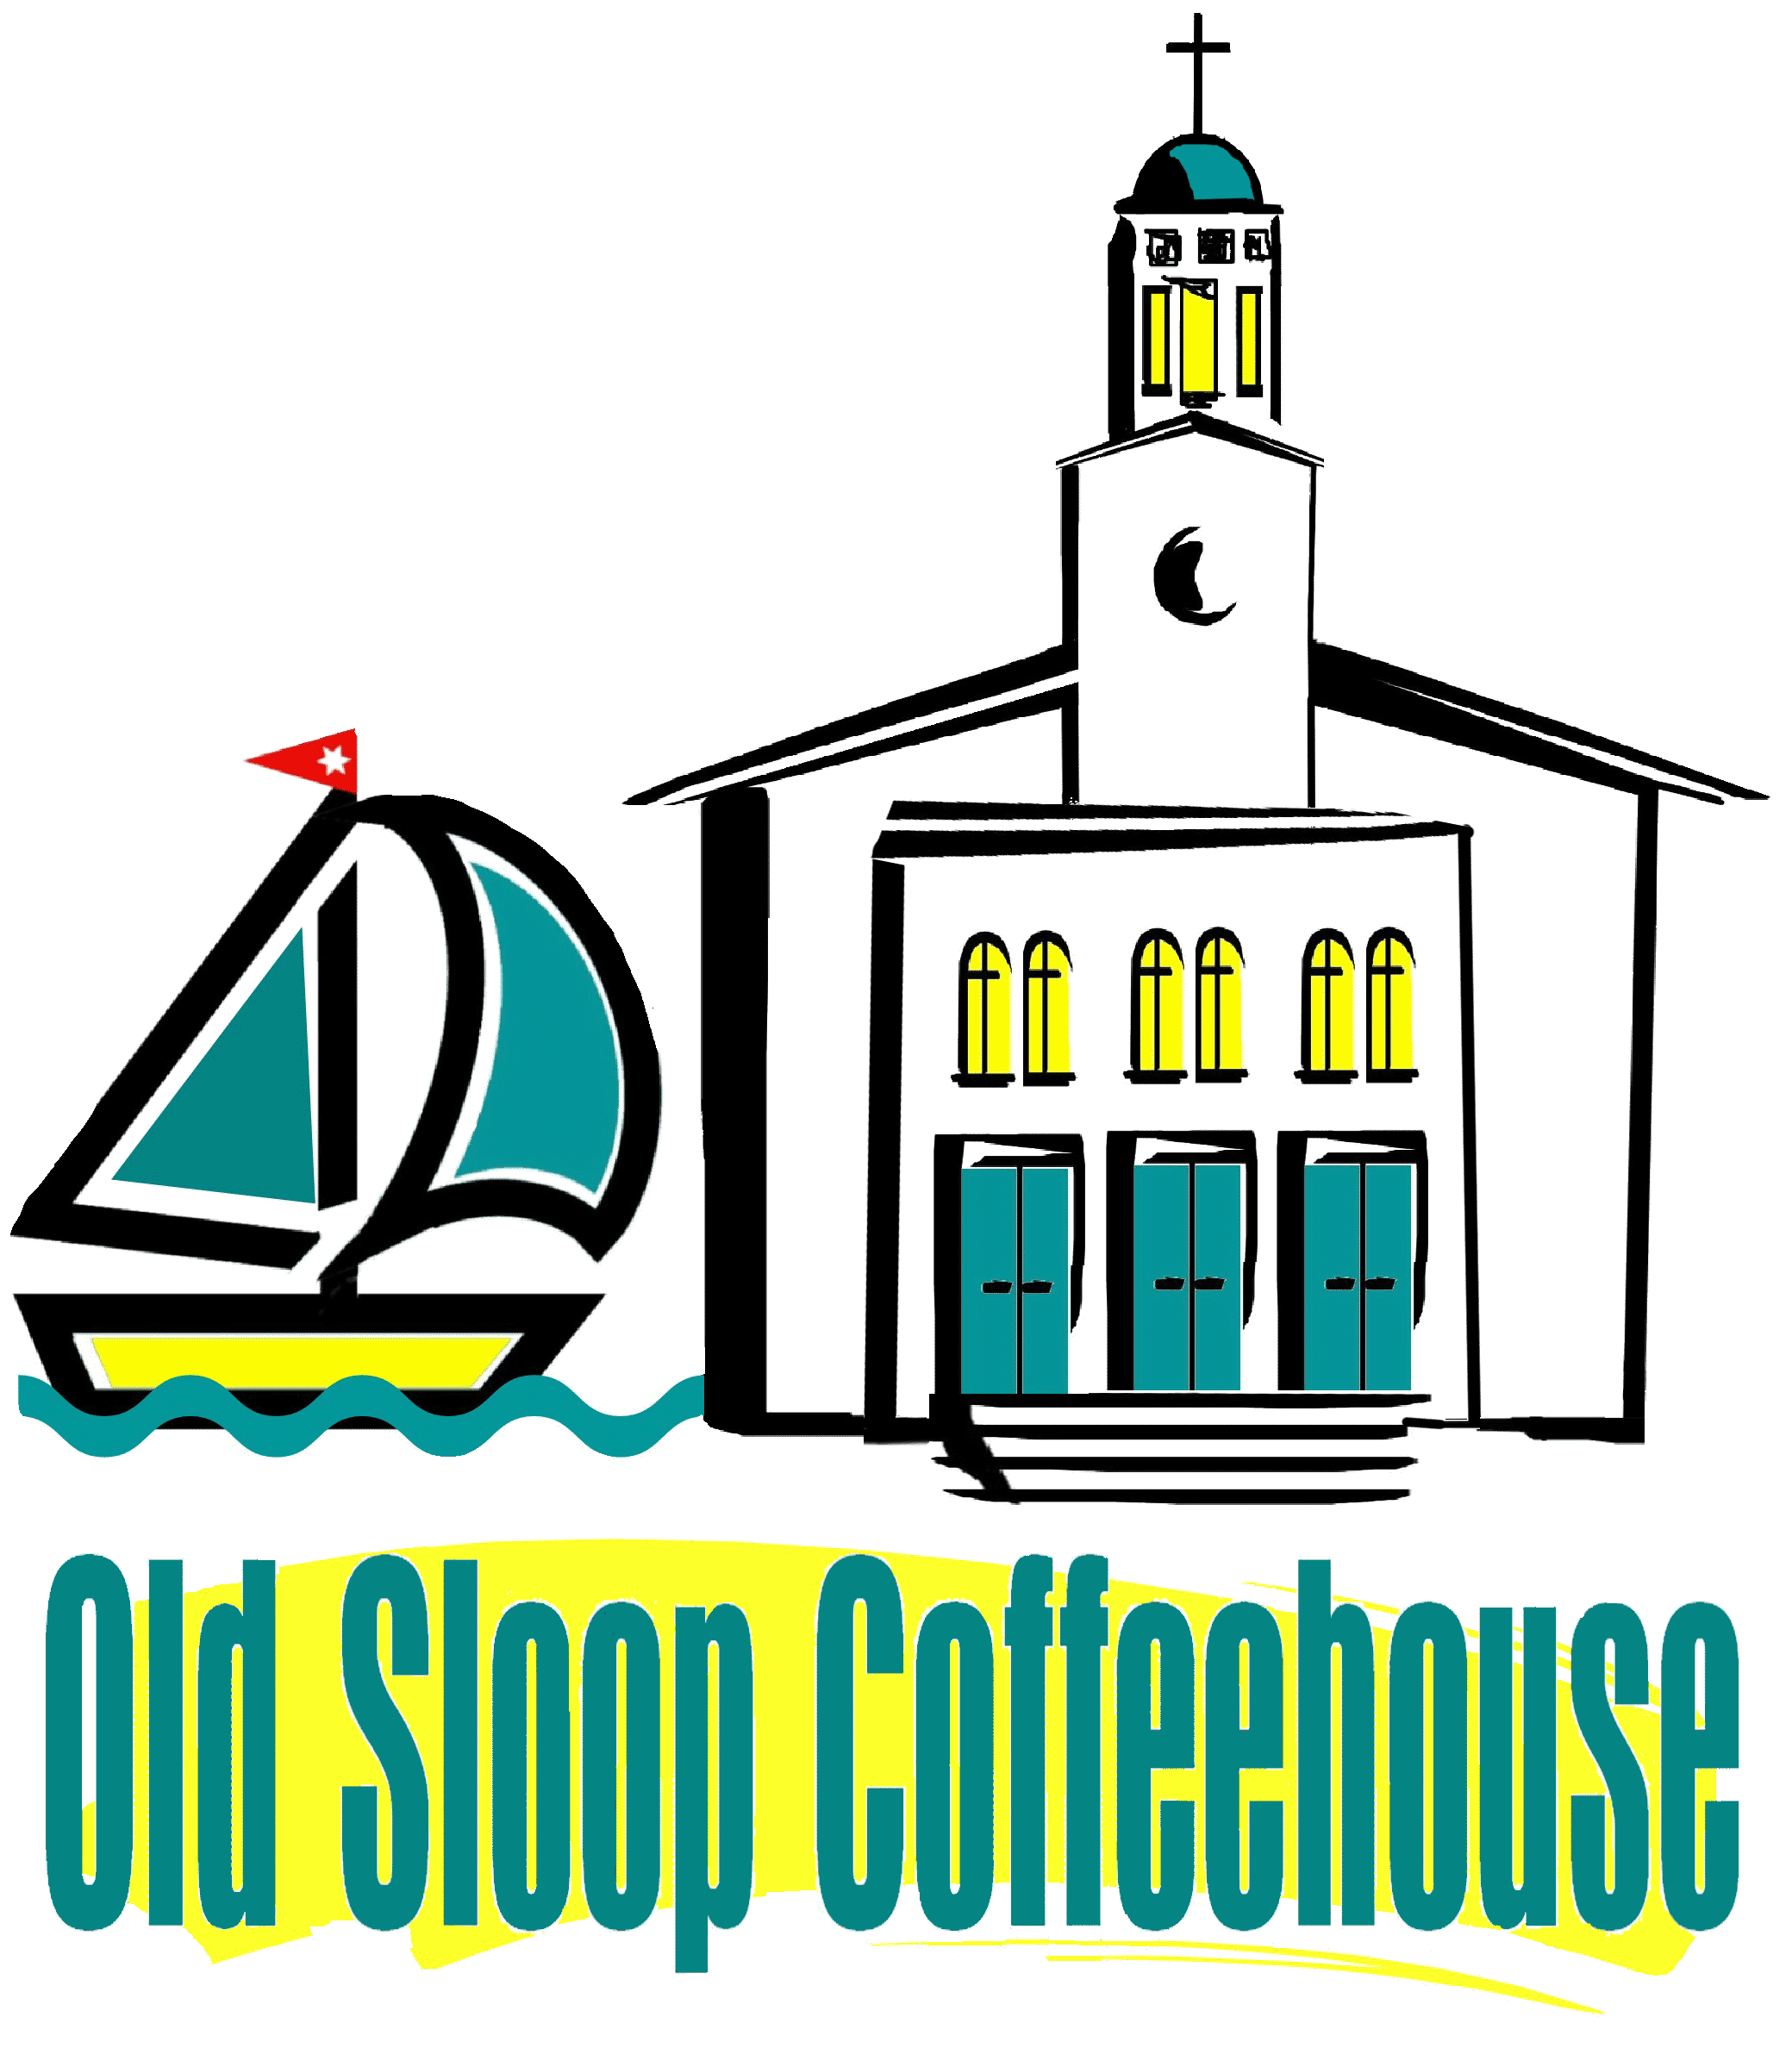 coffeehouse-logo_(1).png